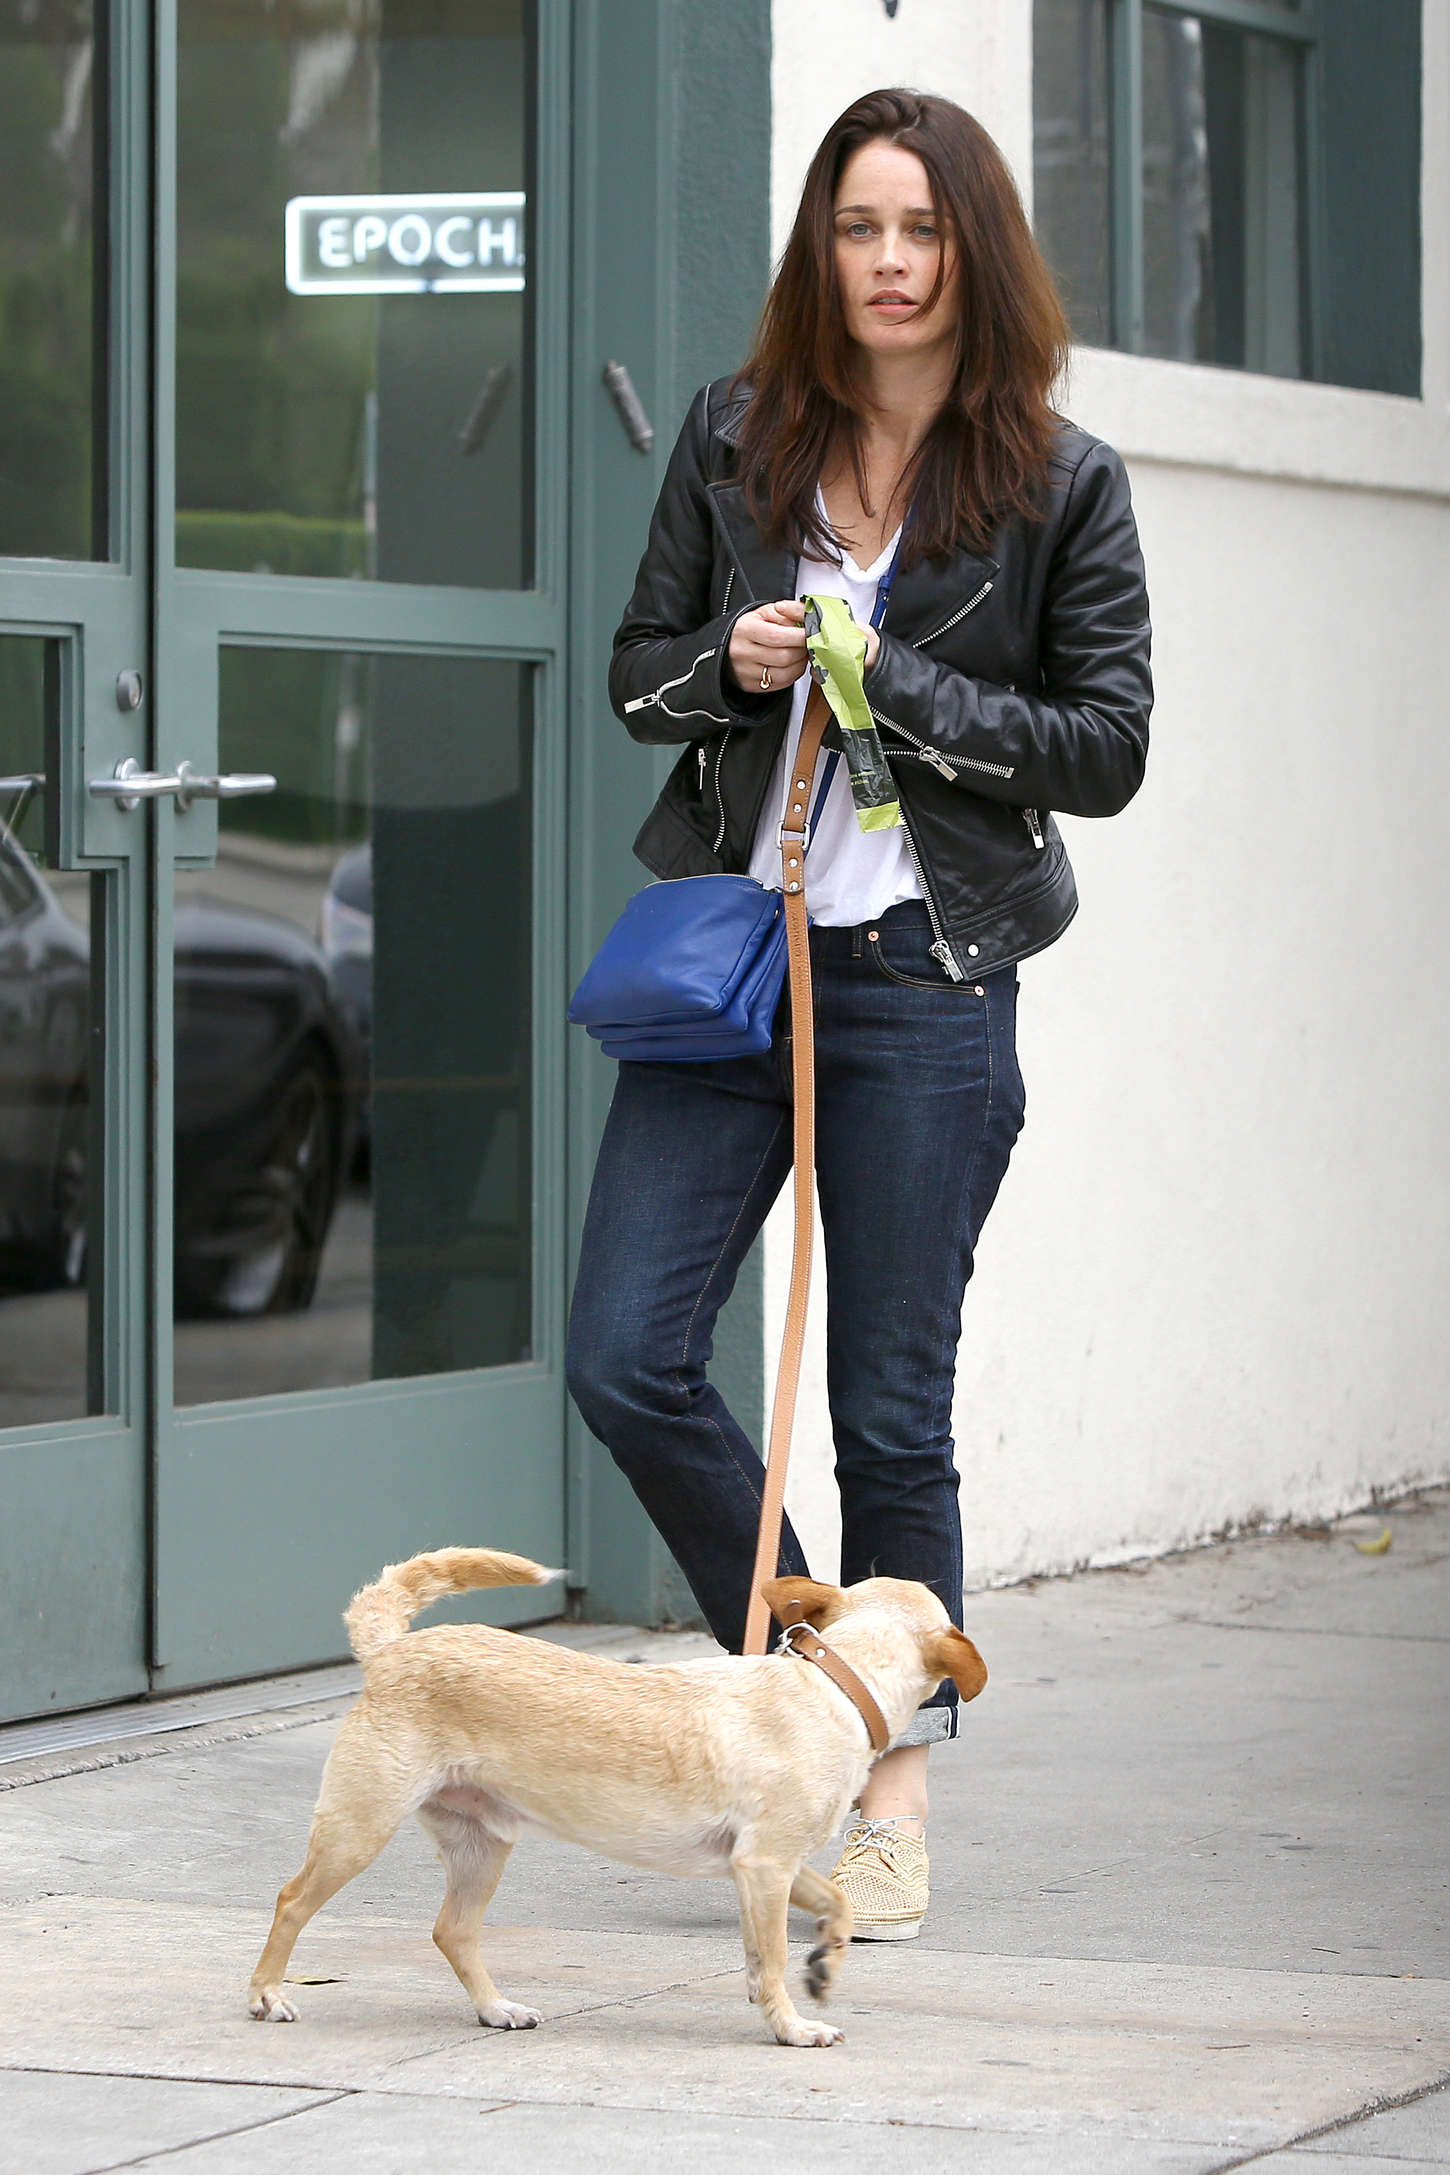 Photo of Robin Tunney & her Dog